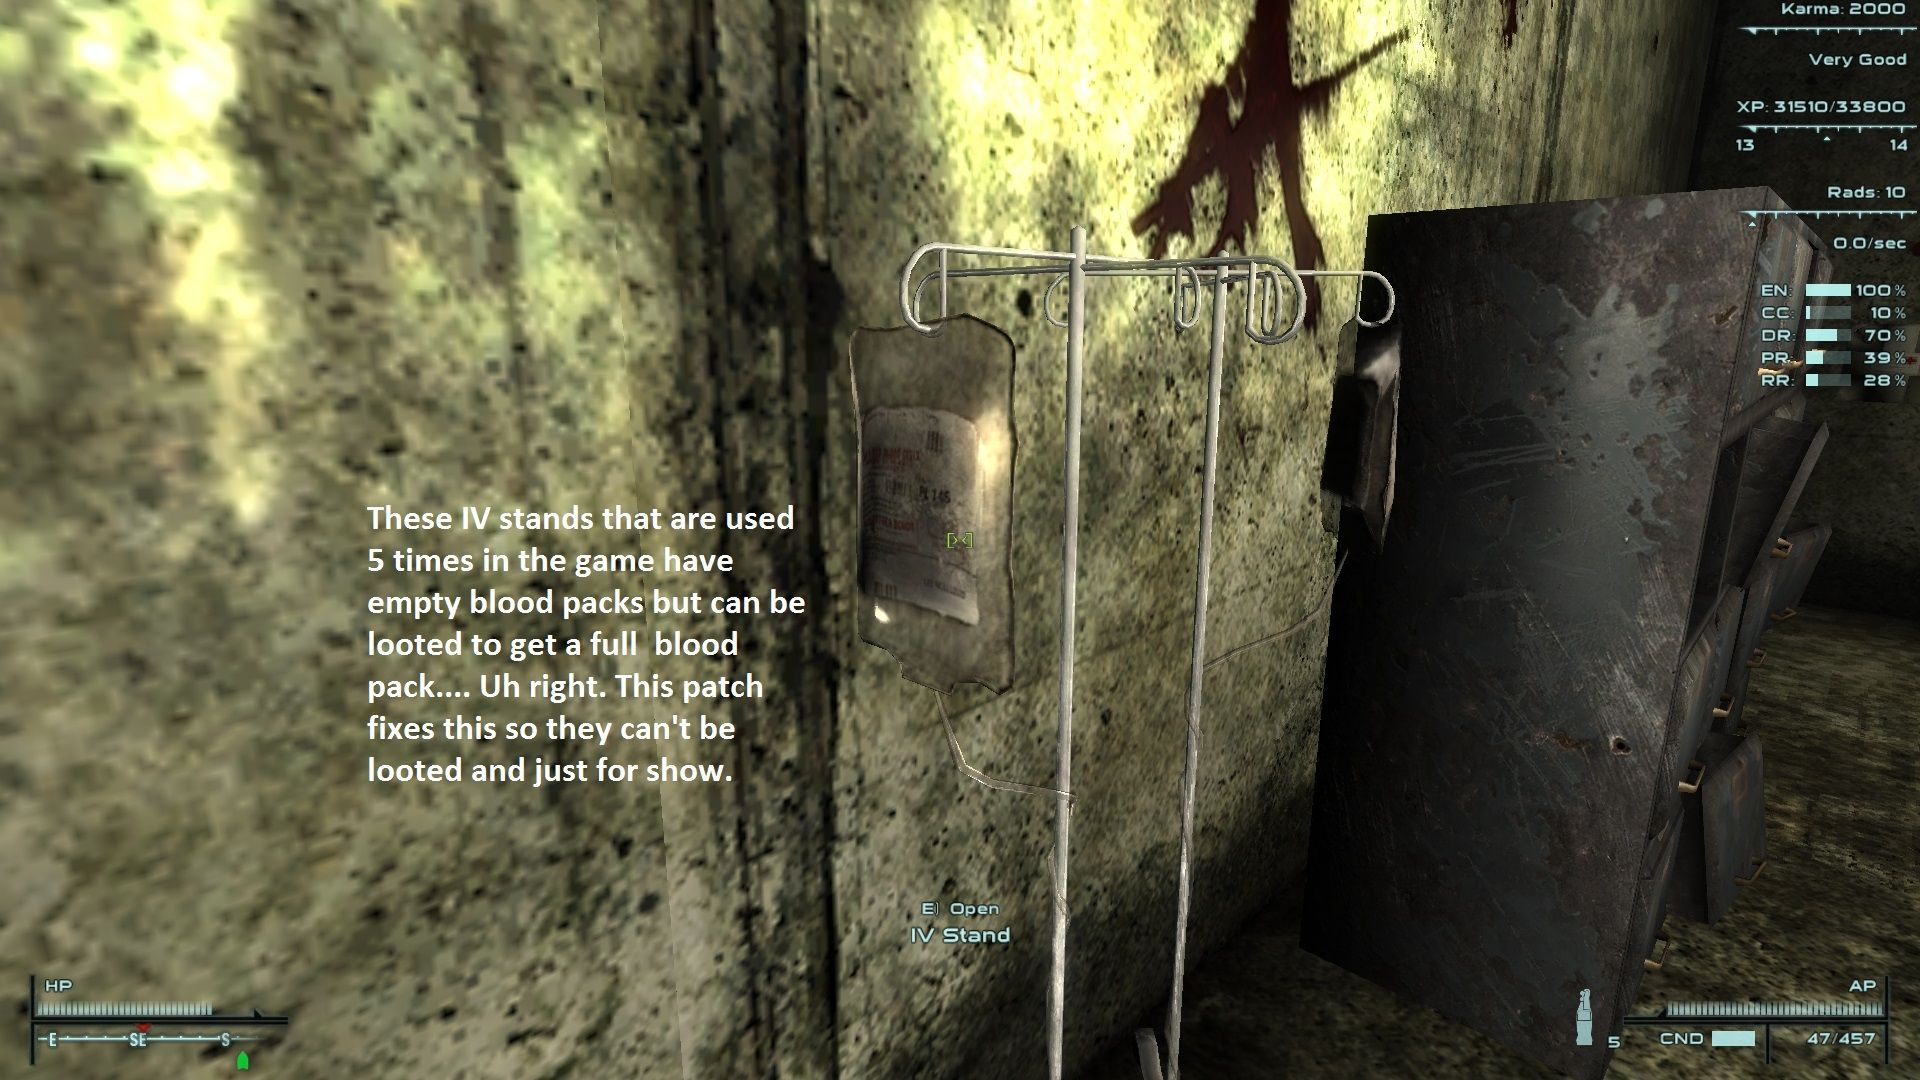 UPDATED Unofficial Fallout 3 Patch at Fallout3 Nexus - mods